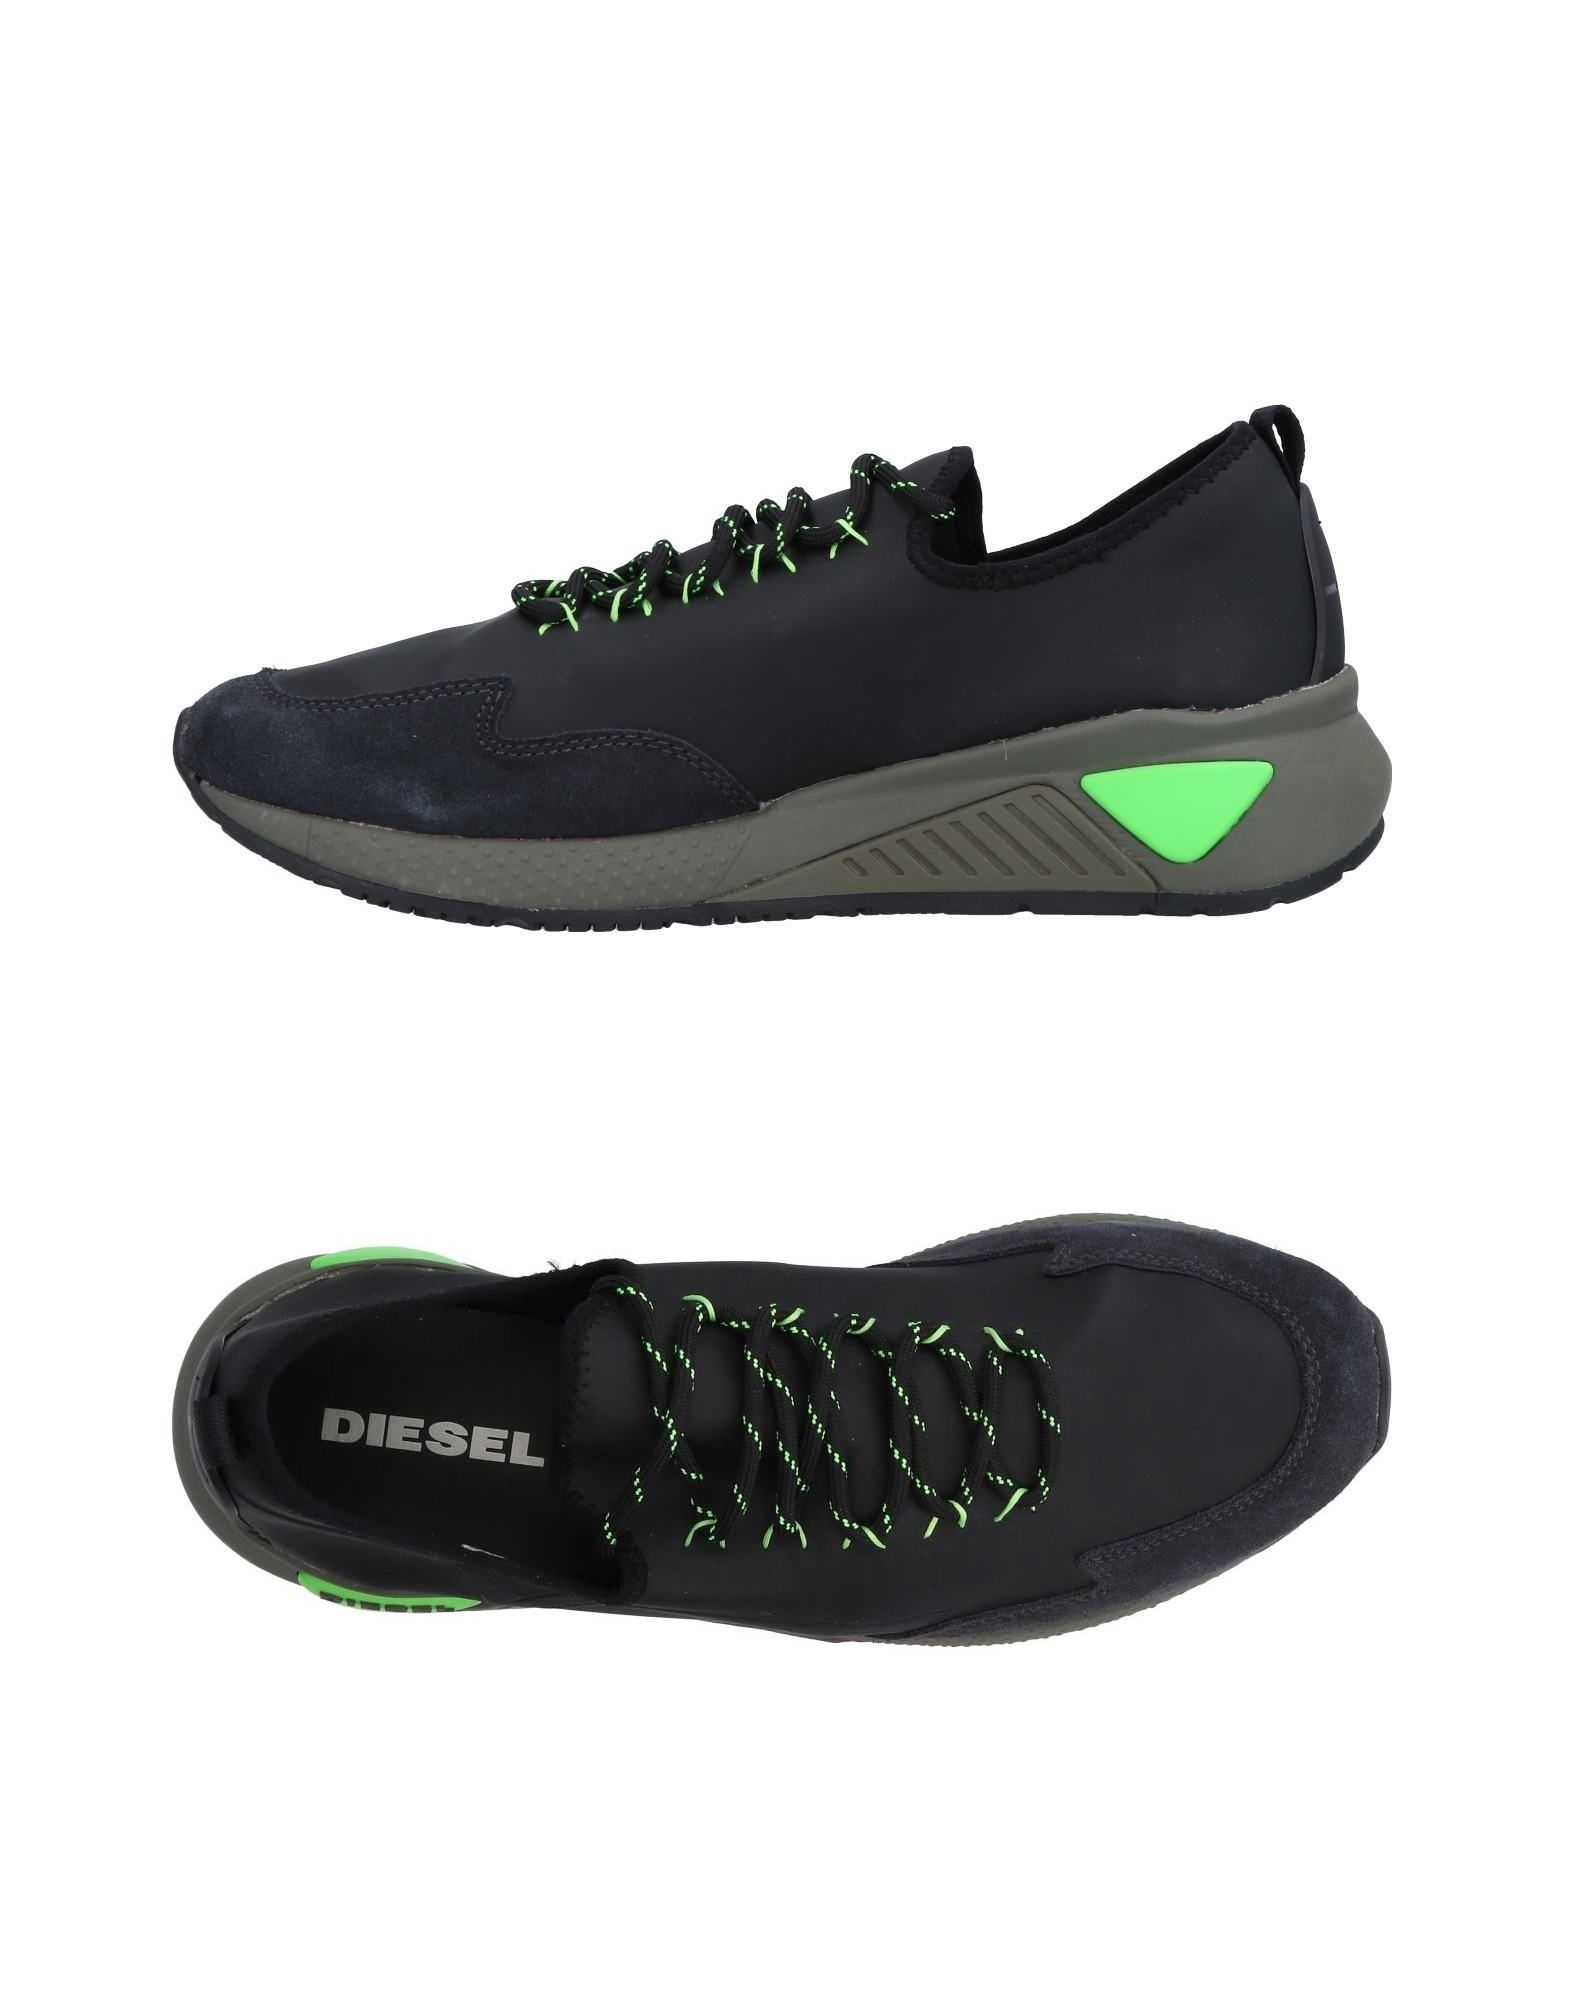 Diesel Sneakers  - Men Diesel Sneakers online on  Sneakers Canada - 11491099MB 7a61fa